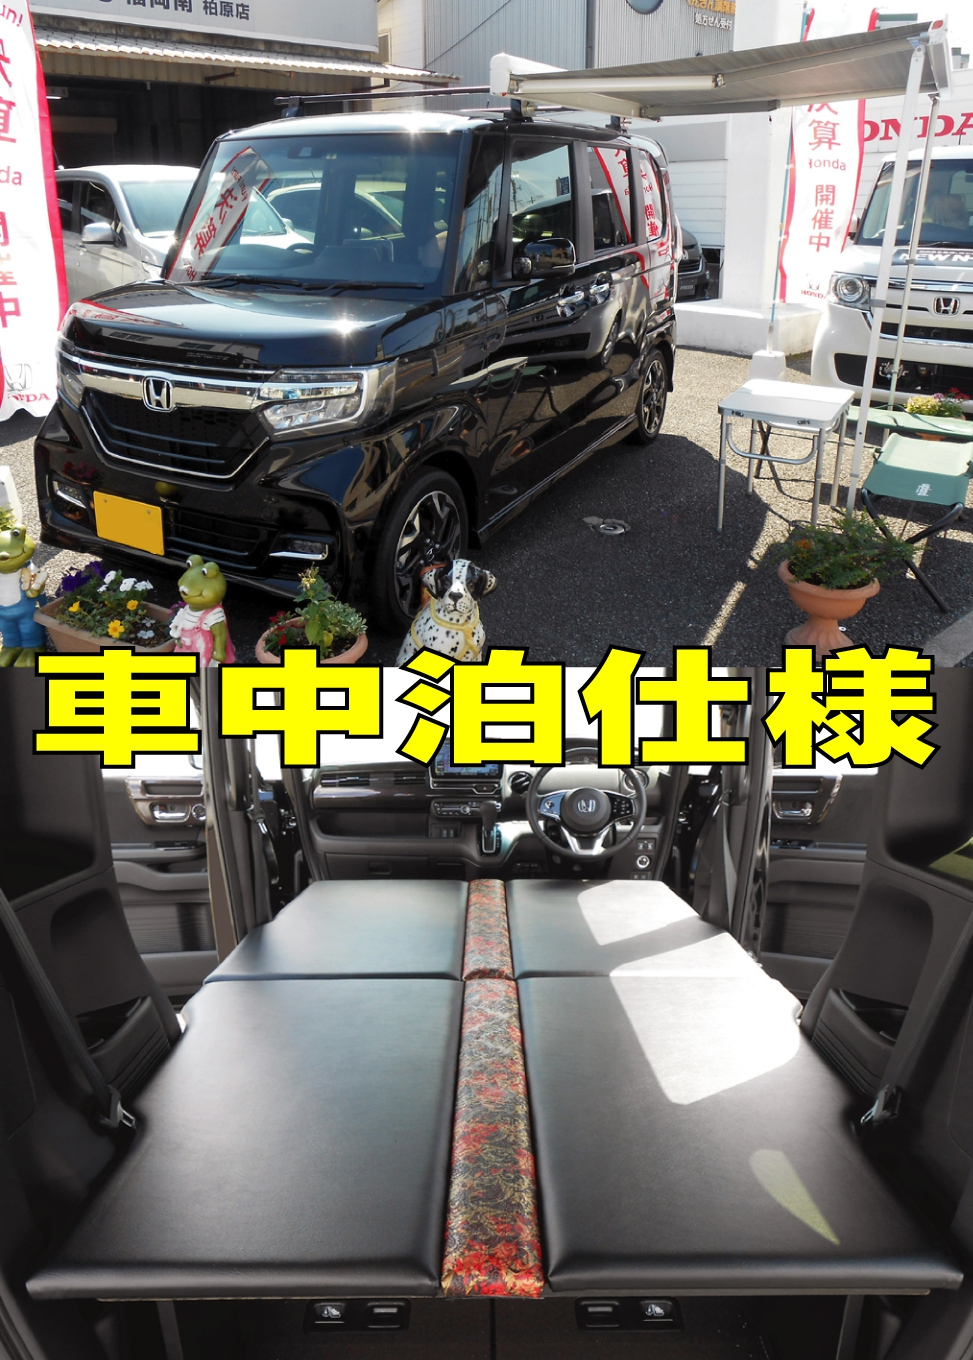 なんとホンダディーラーの車中泊仕様の新型N-BOX&N BOX Customカスタムターボが販売中!